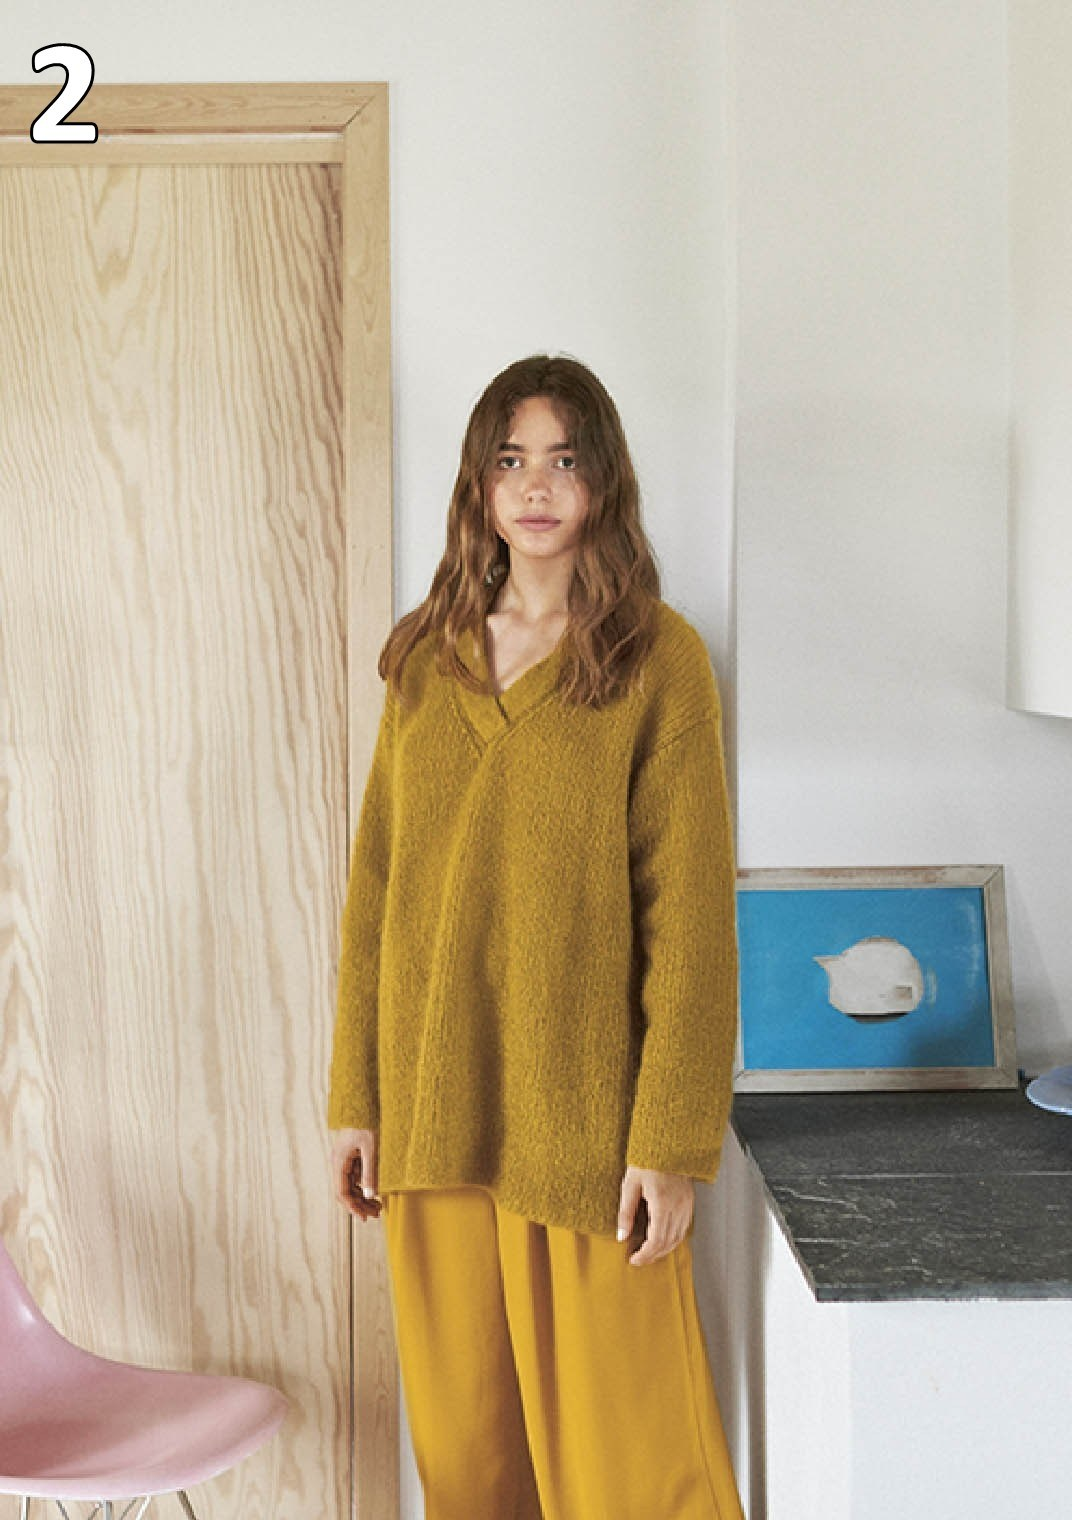 Sandnes strikkehæfte 1912 model 2 Ribgenser (sweater)